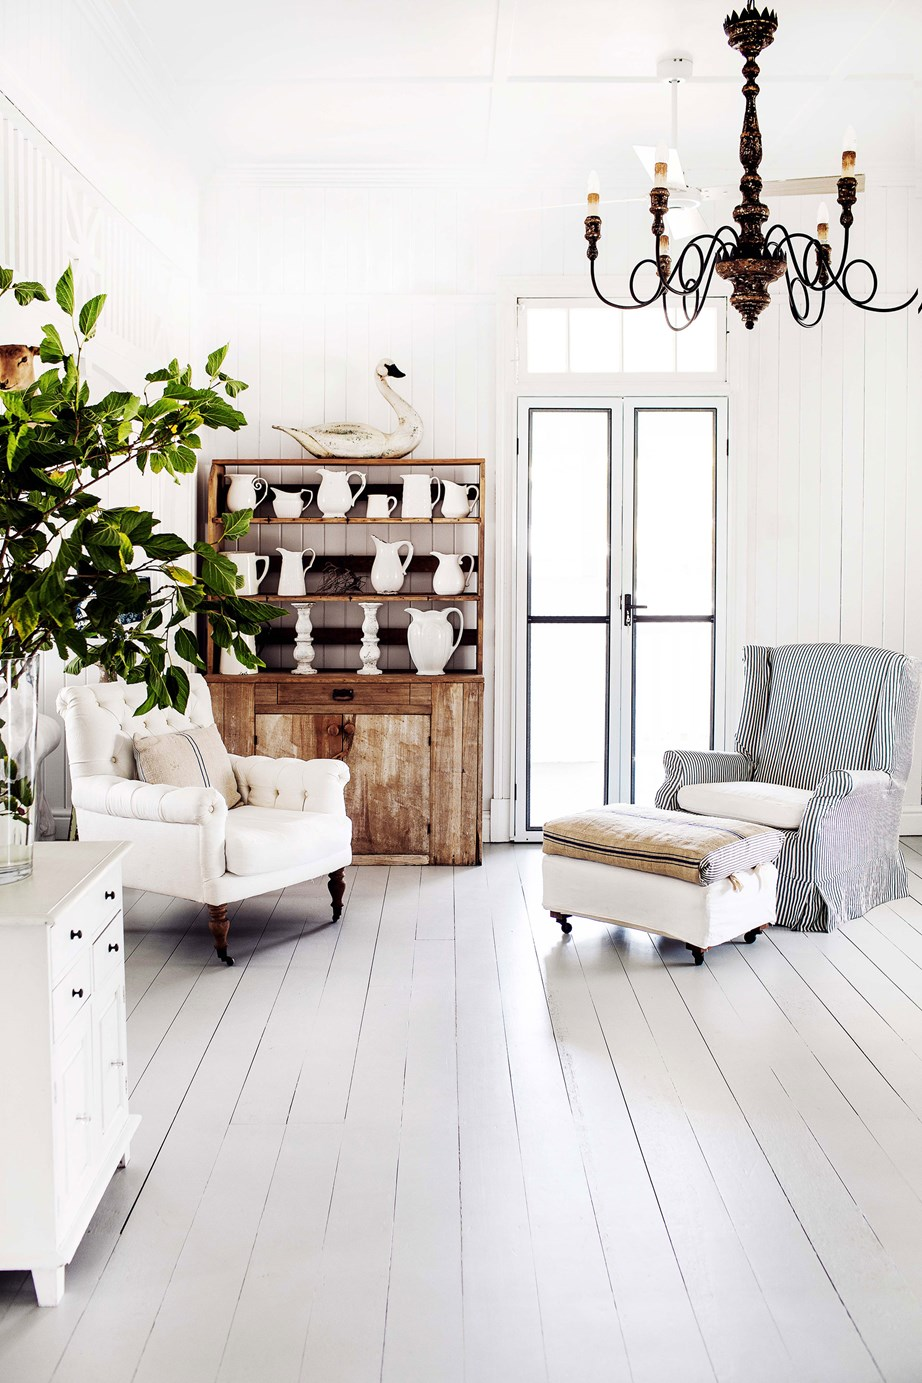 "Lashings of white paint and rooms filled with restored antique furniture, vintage decor and ornate chandeliers, give this [renovated Queenslander home](https://www.homestolove.com.au/queenslander-white-interior-colour-scheme-19786|target=""_blank"") a French provincial feel."